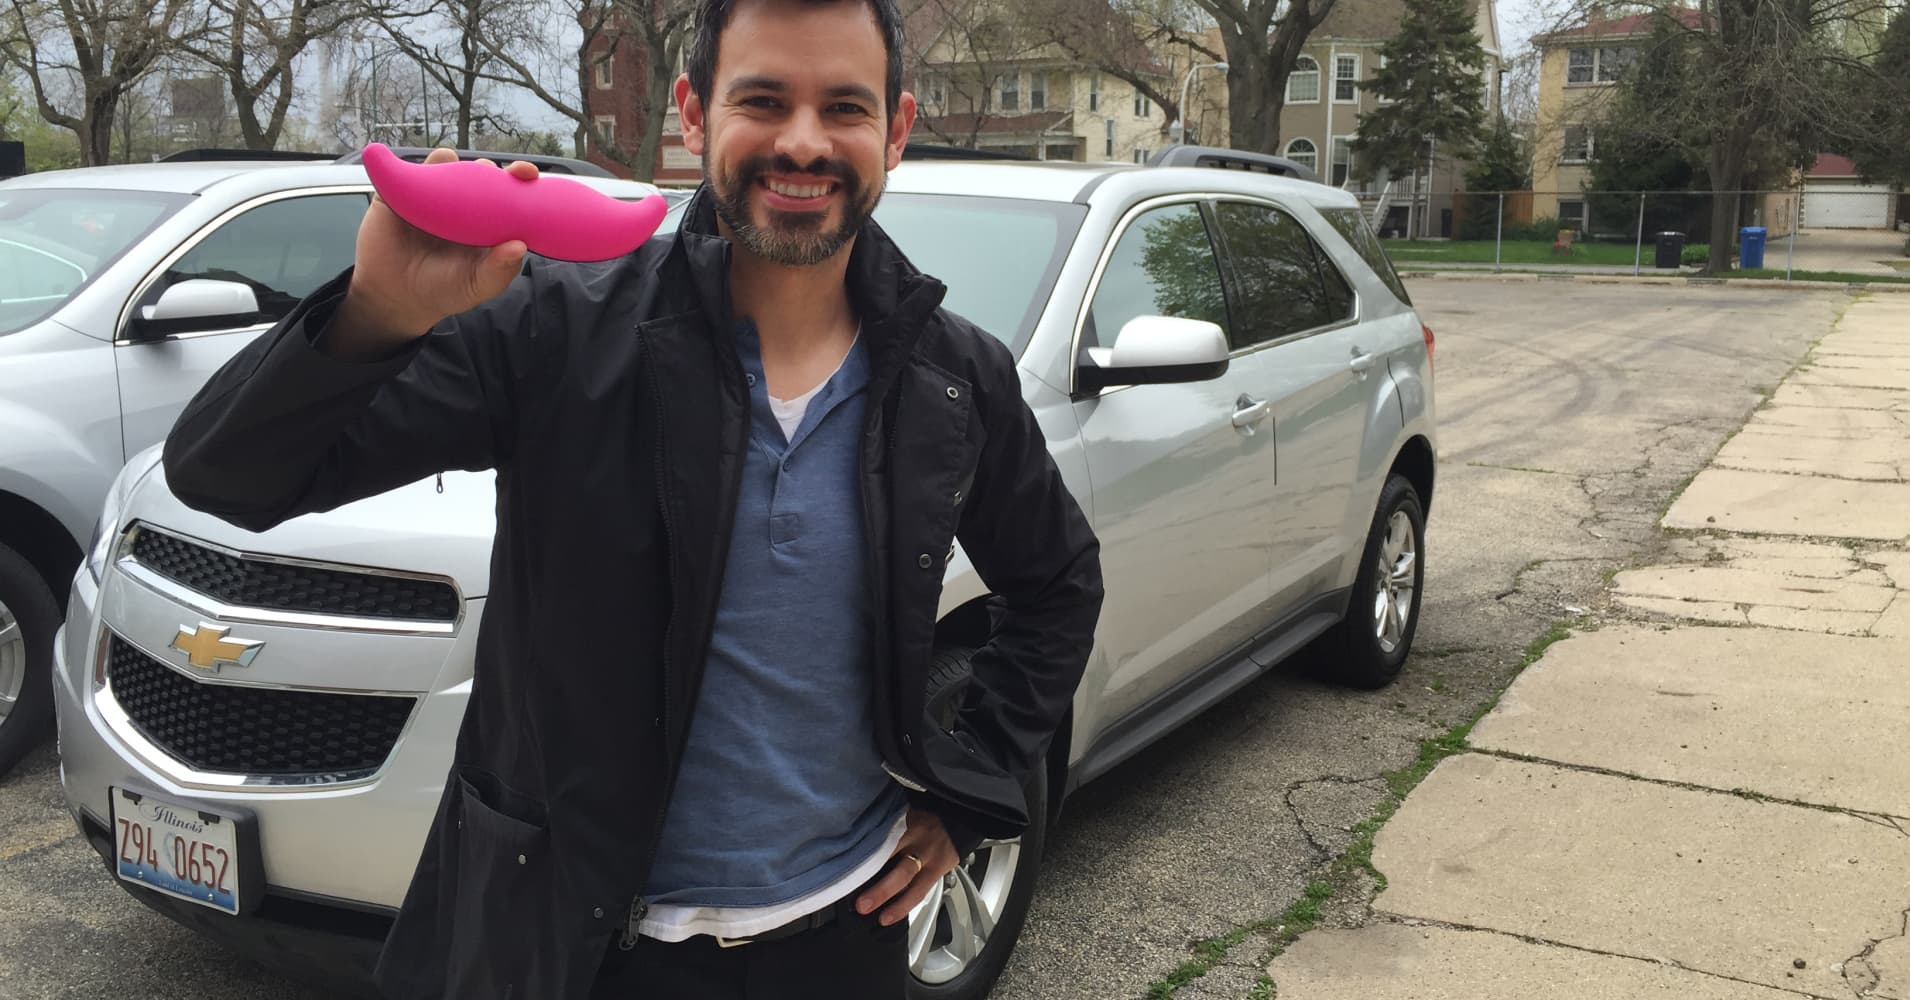 Anthony Ponce's podcast in which he interviews passengers in his Lyft car will air in August.